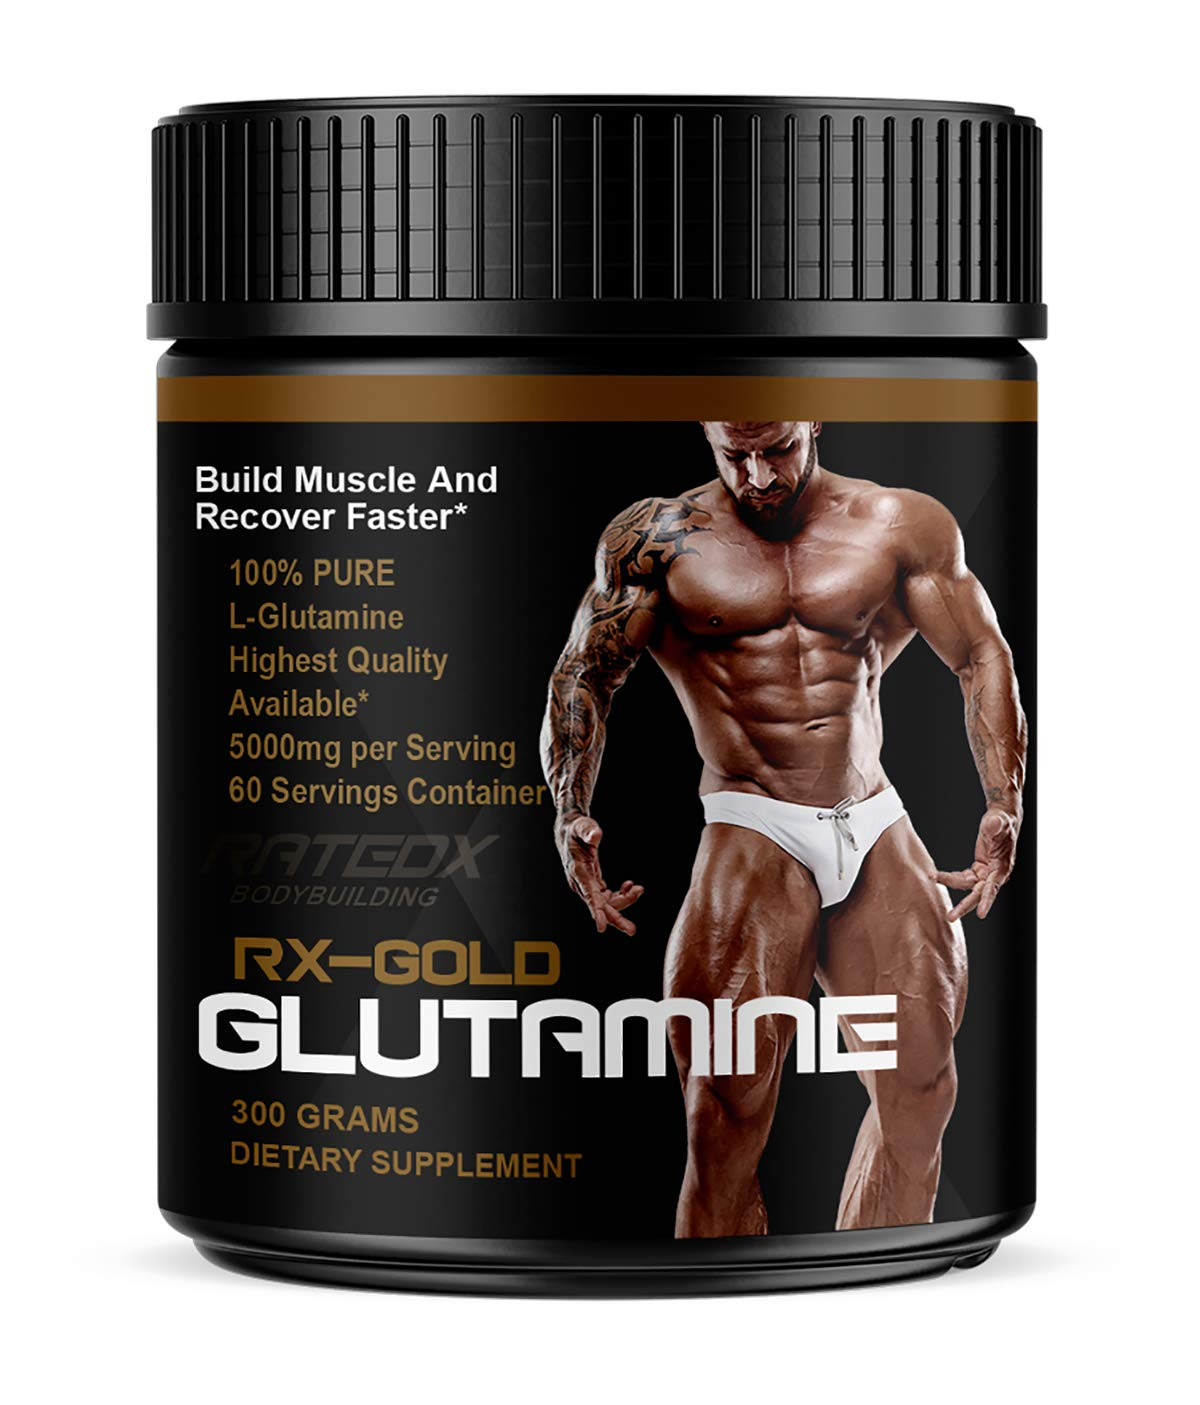 RATEDX BODYBUILDING L-GLUTAMINE Muscle Recovery Powder